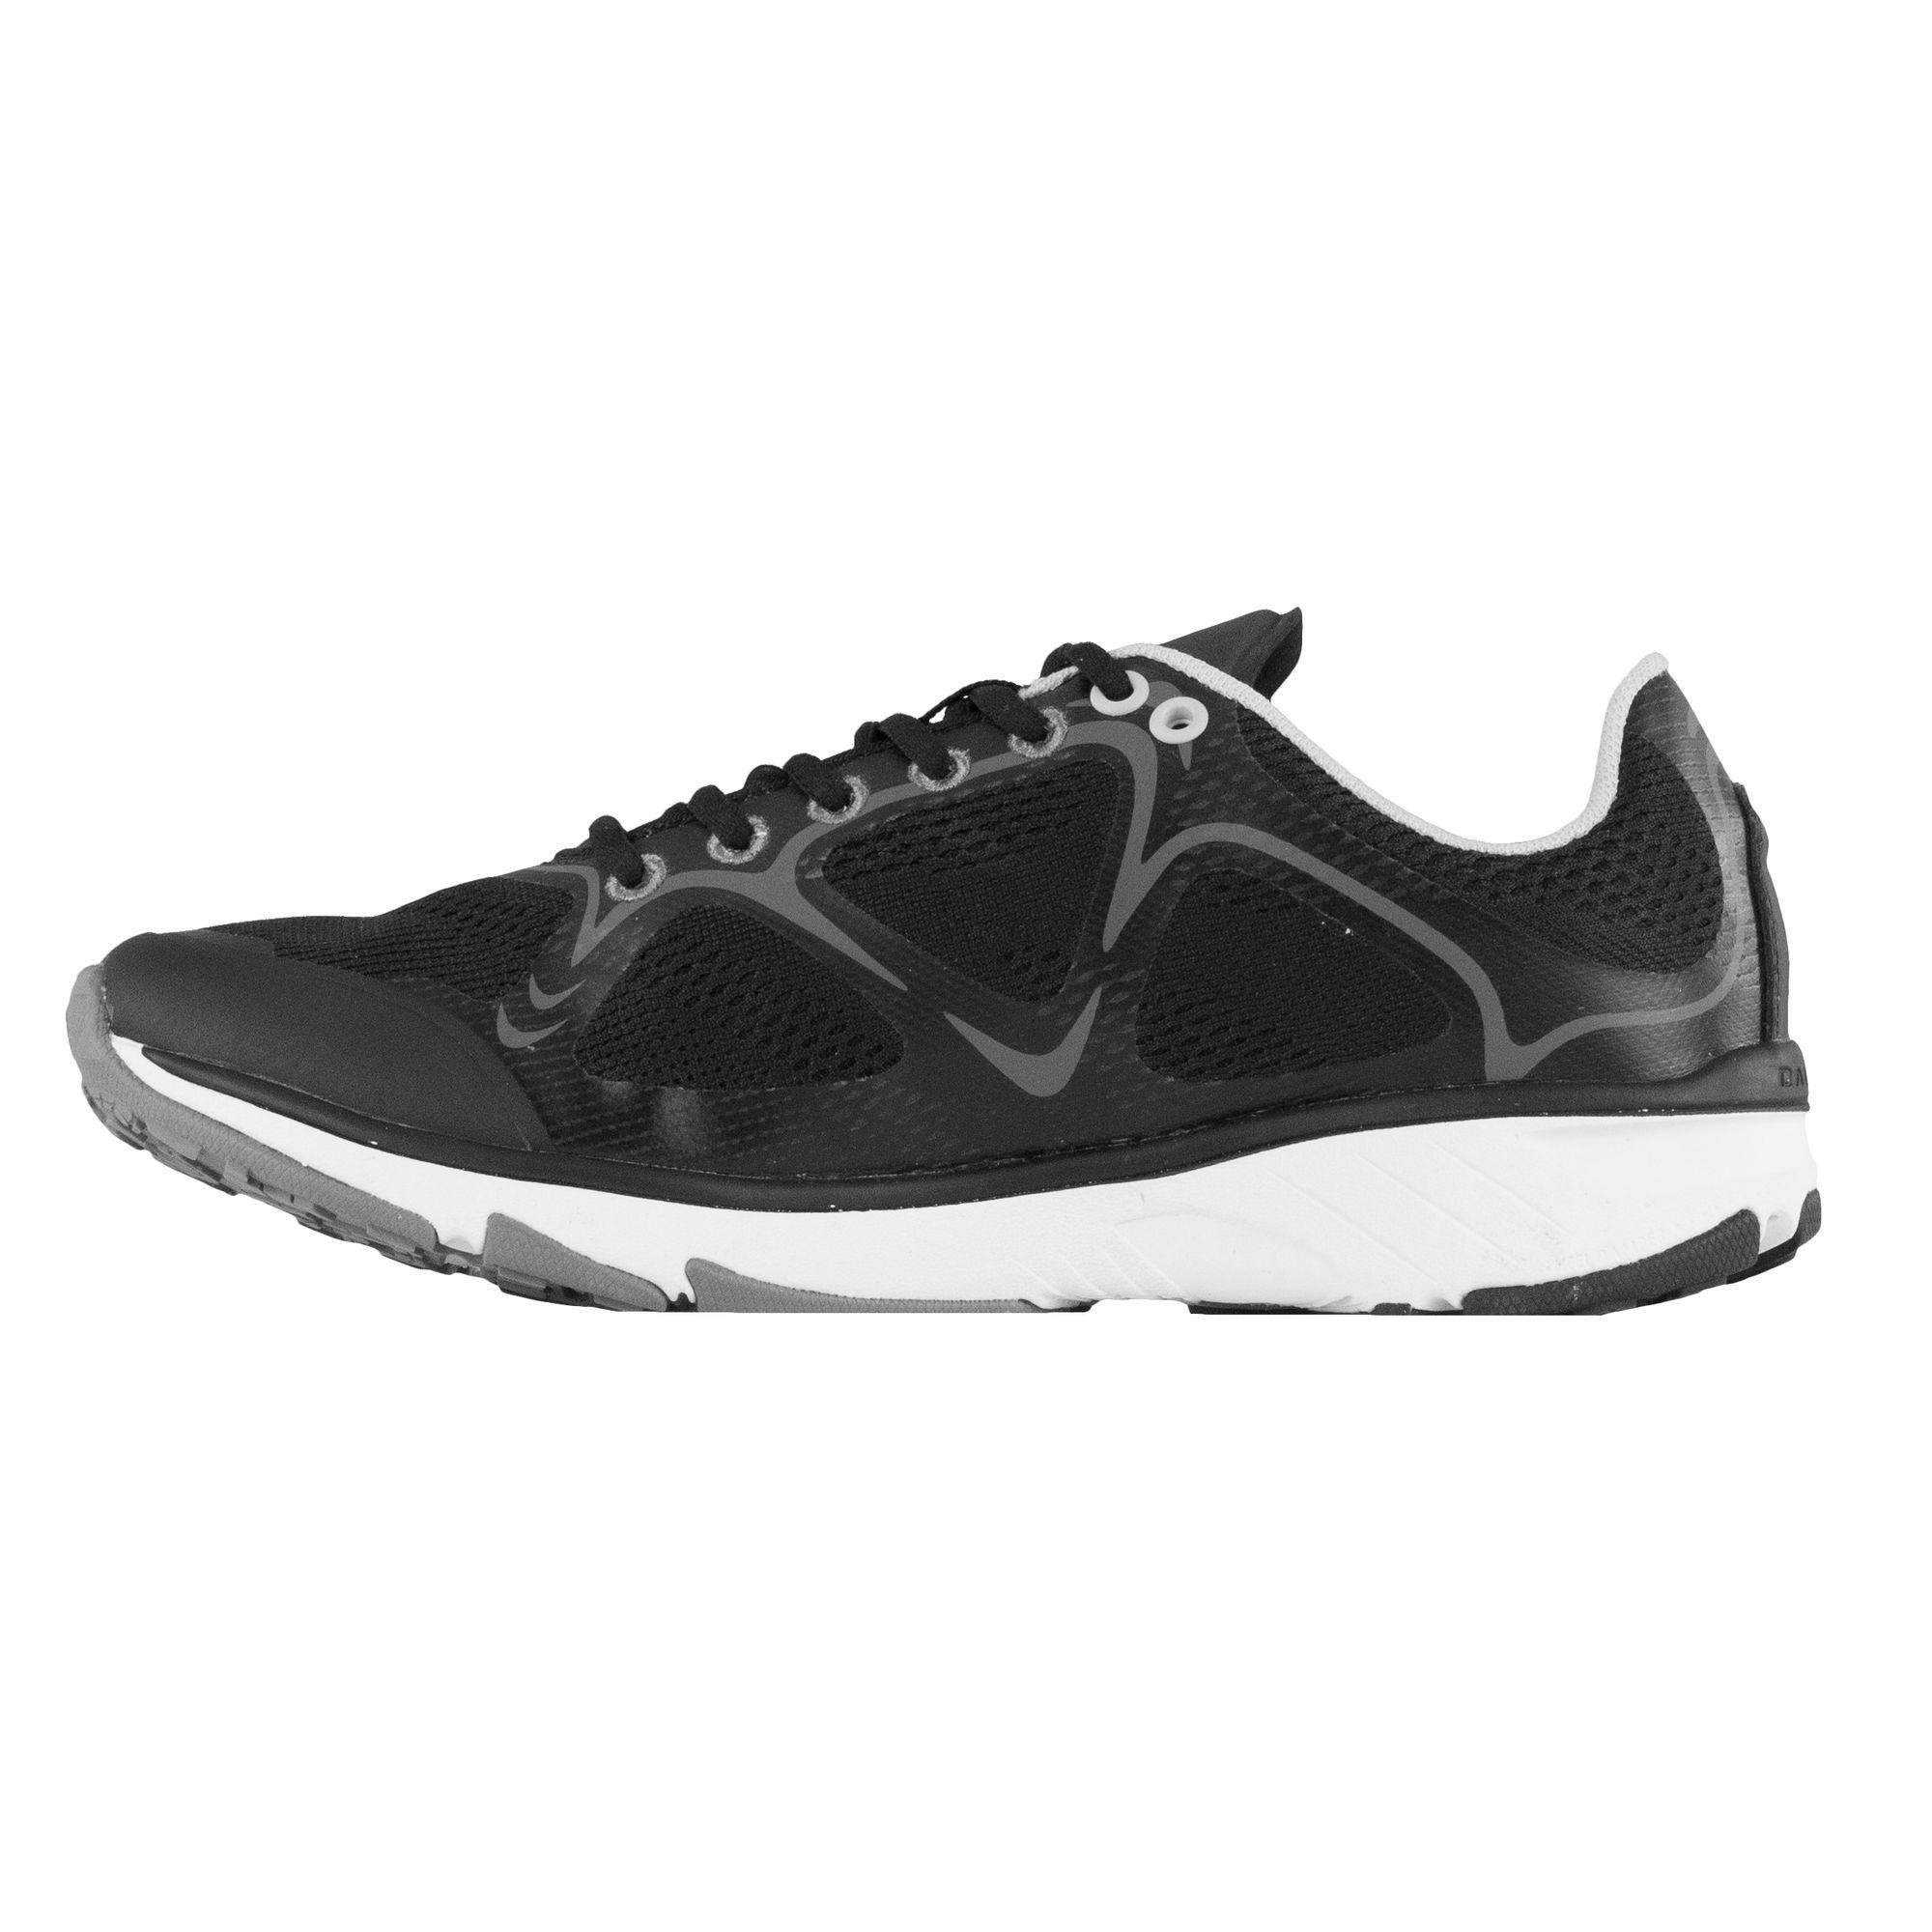 fashion Style cheap online Black lady altare training shoes clearance store cheap price 100% original cheap price jHwGv